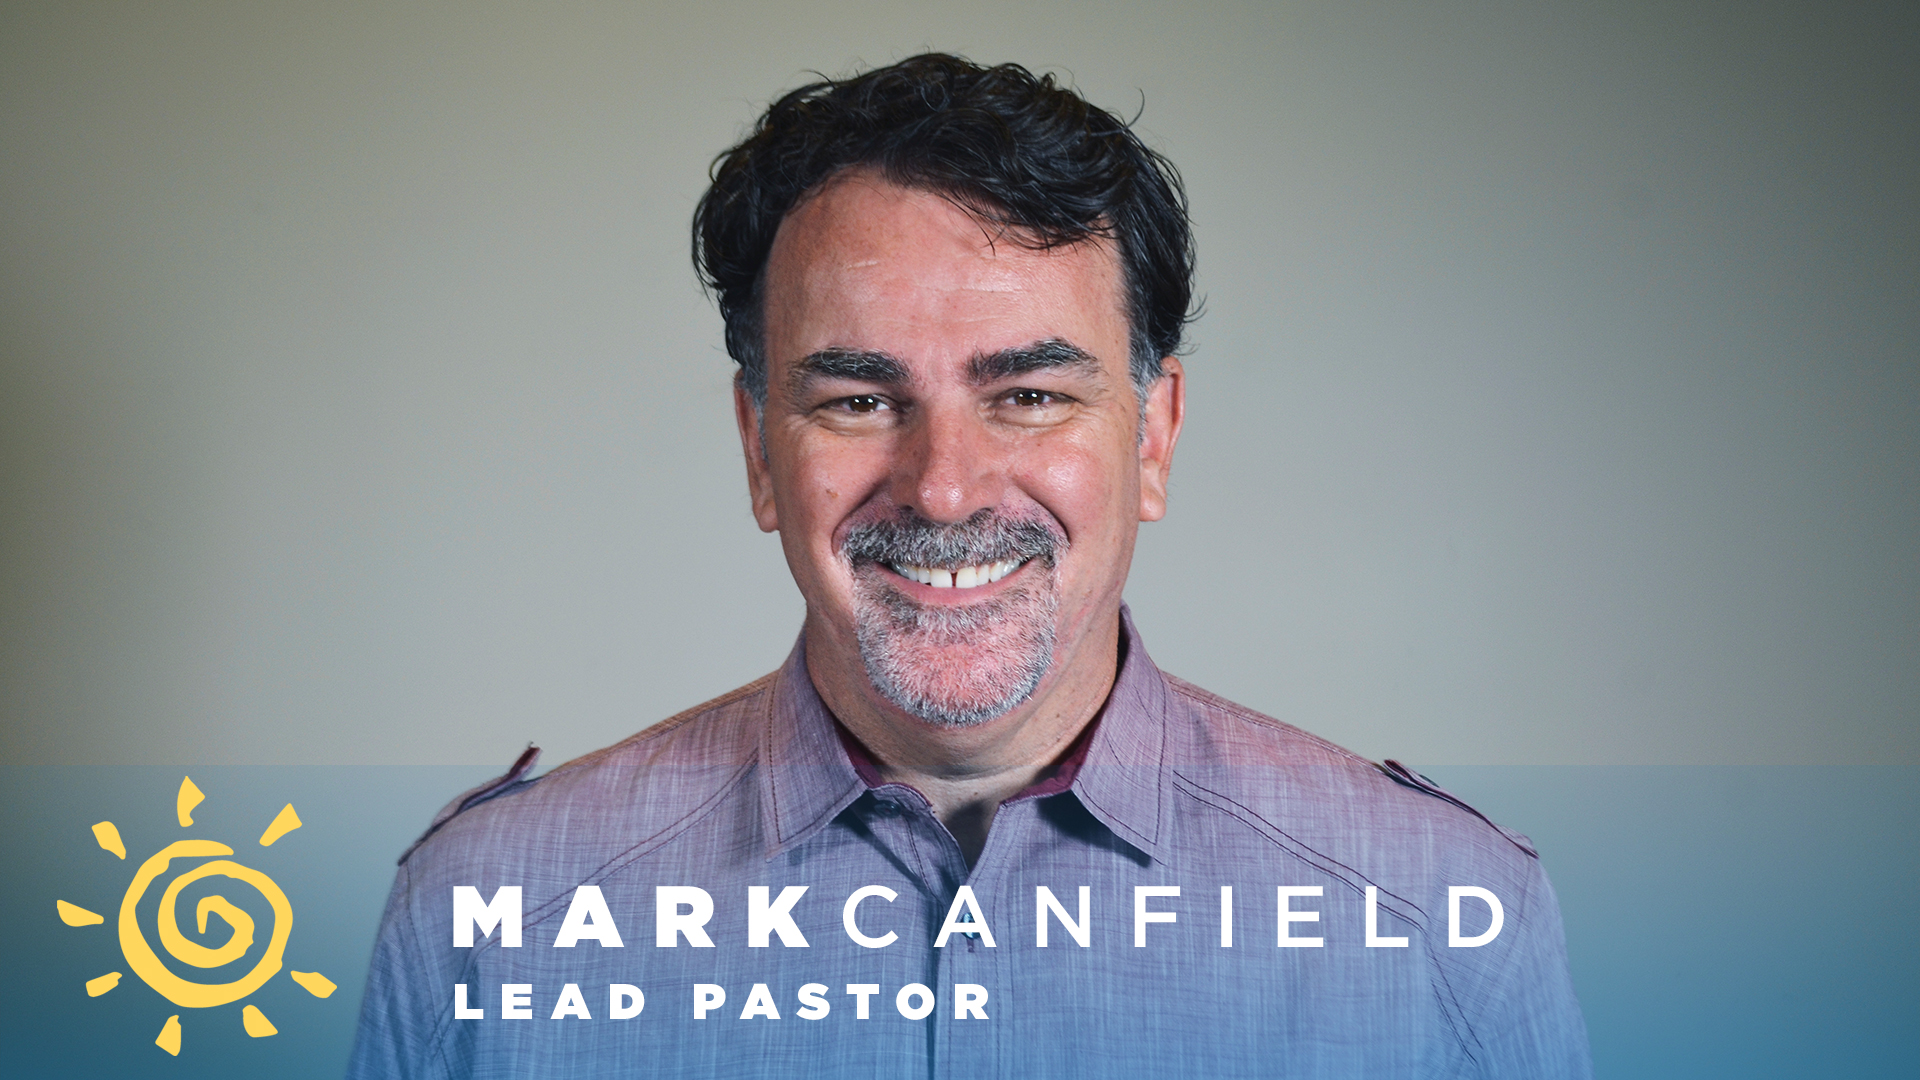 Mark Canfield